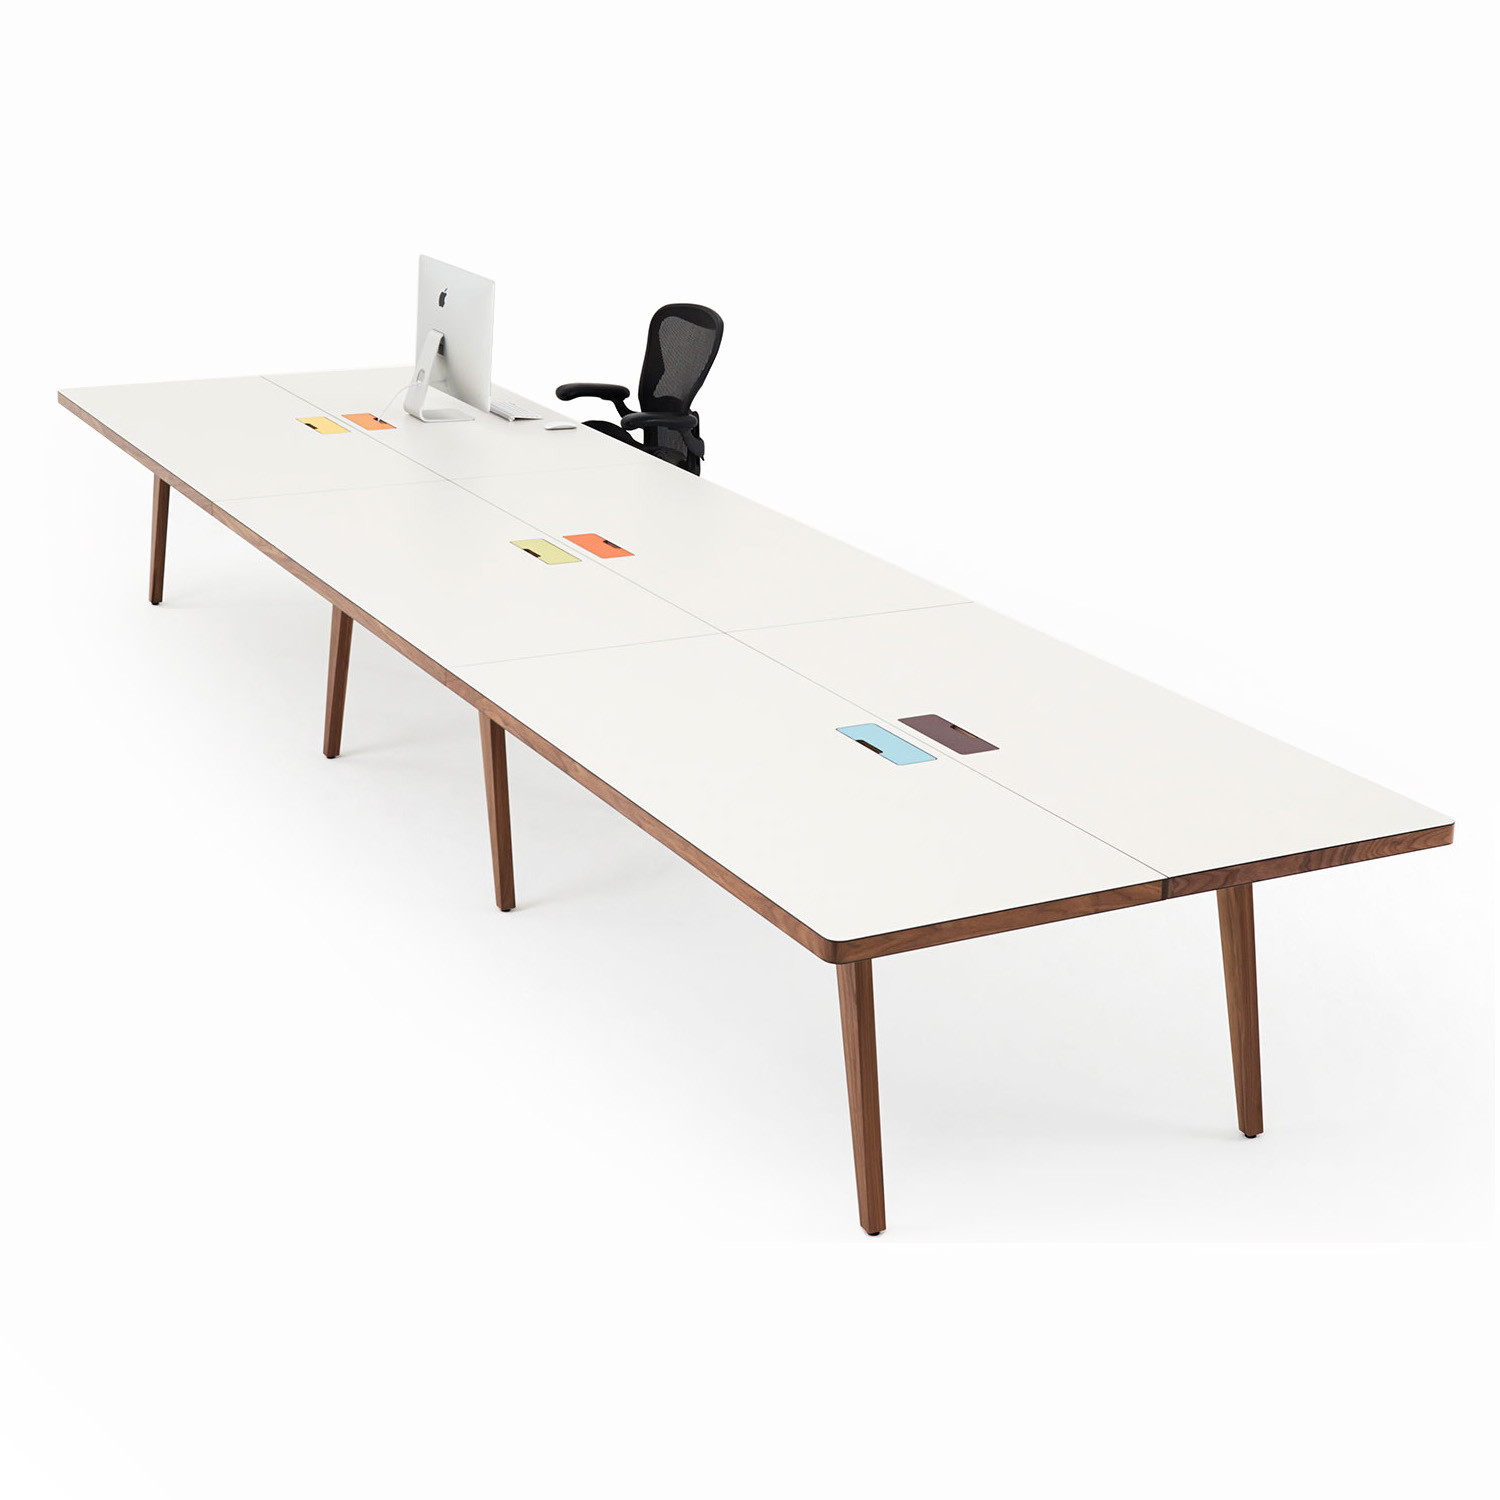 Osprey Table With Power Management